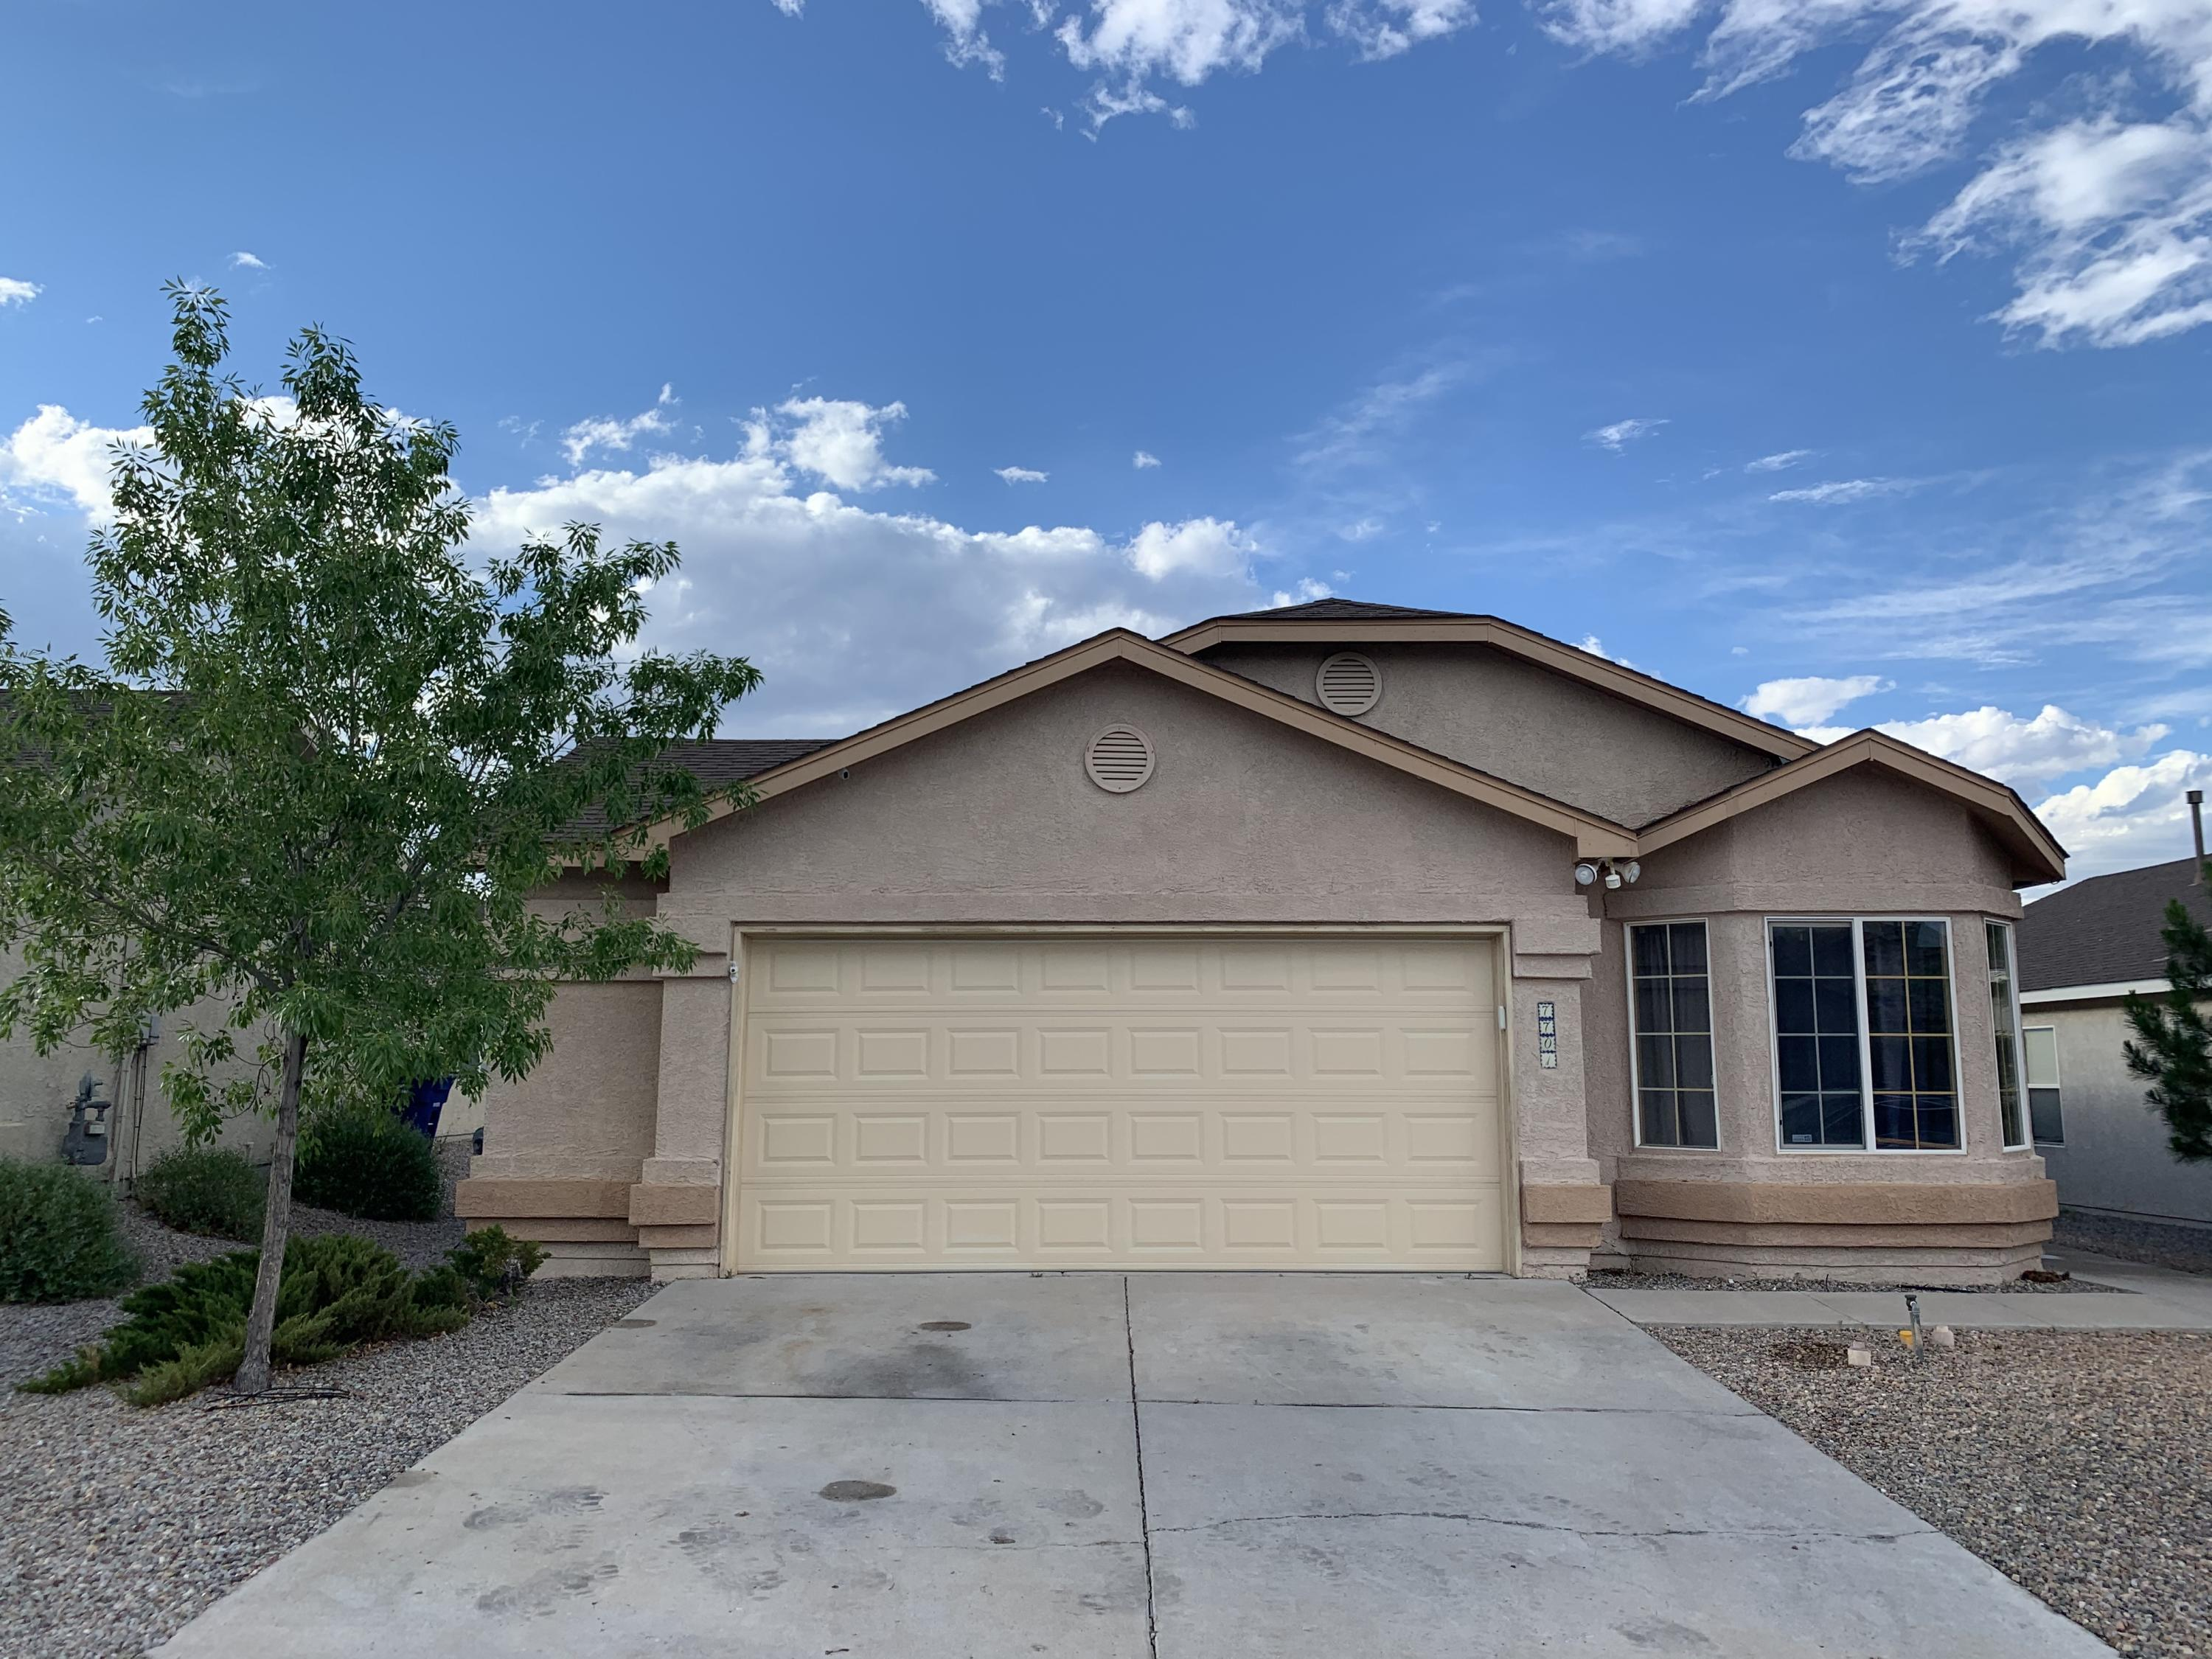 Ventana Ranch!, Casa Bonita!, Open Floor Plan, Comfortable and Cozy! 4 Bedroom, 2 Full Bath, 2 Car Garage With Convenient Extra Space on One Side for Storage, Elevated Ceilings, Fire Place,  Covered Patio, New Carpet in the Bedrooms and Tile in the Rest of the House.